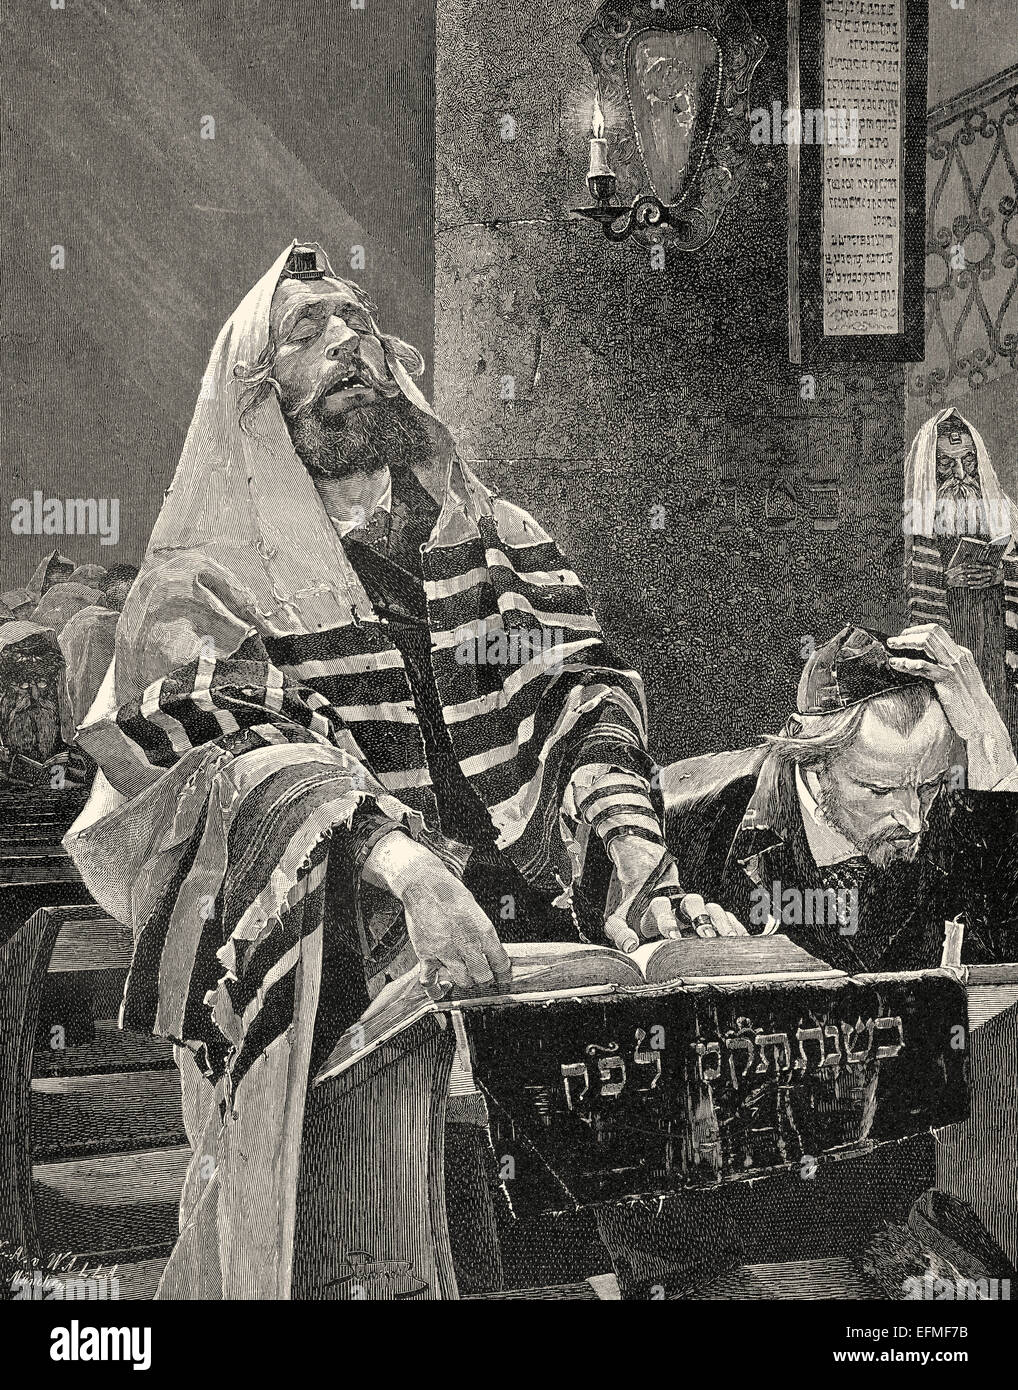 Cantor in a synagogue in Poland, c. 1890, after Grocholski - Stock Image